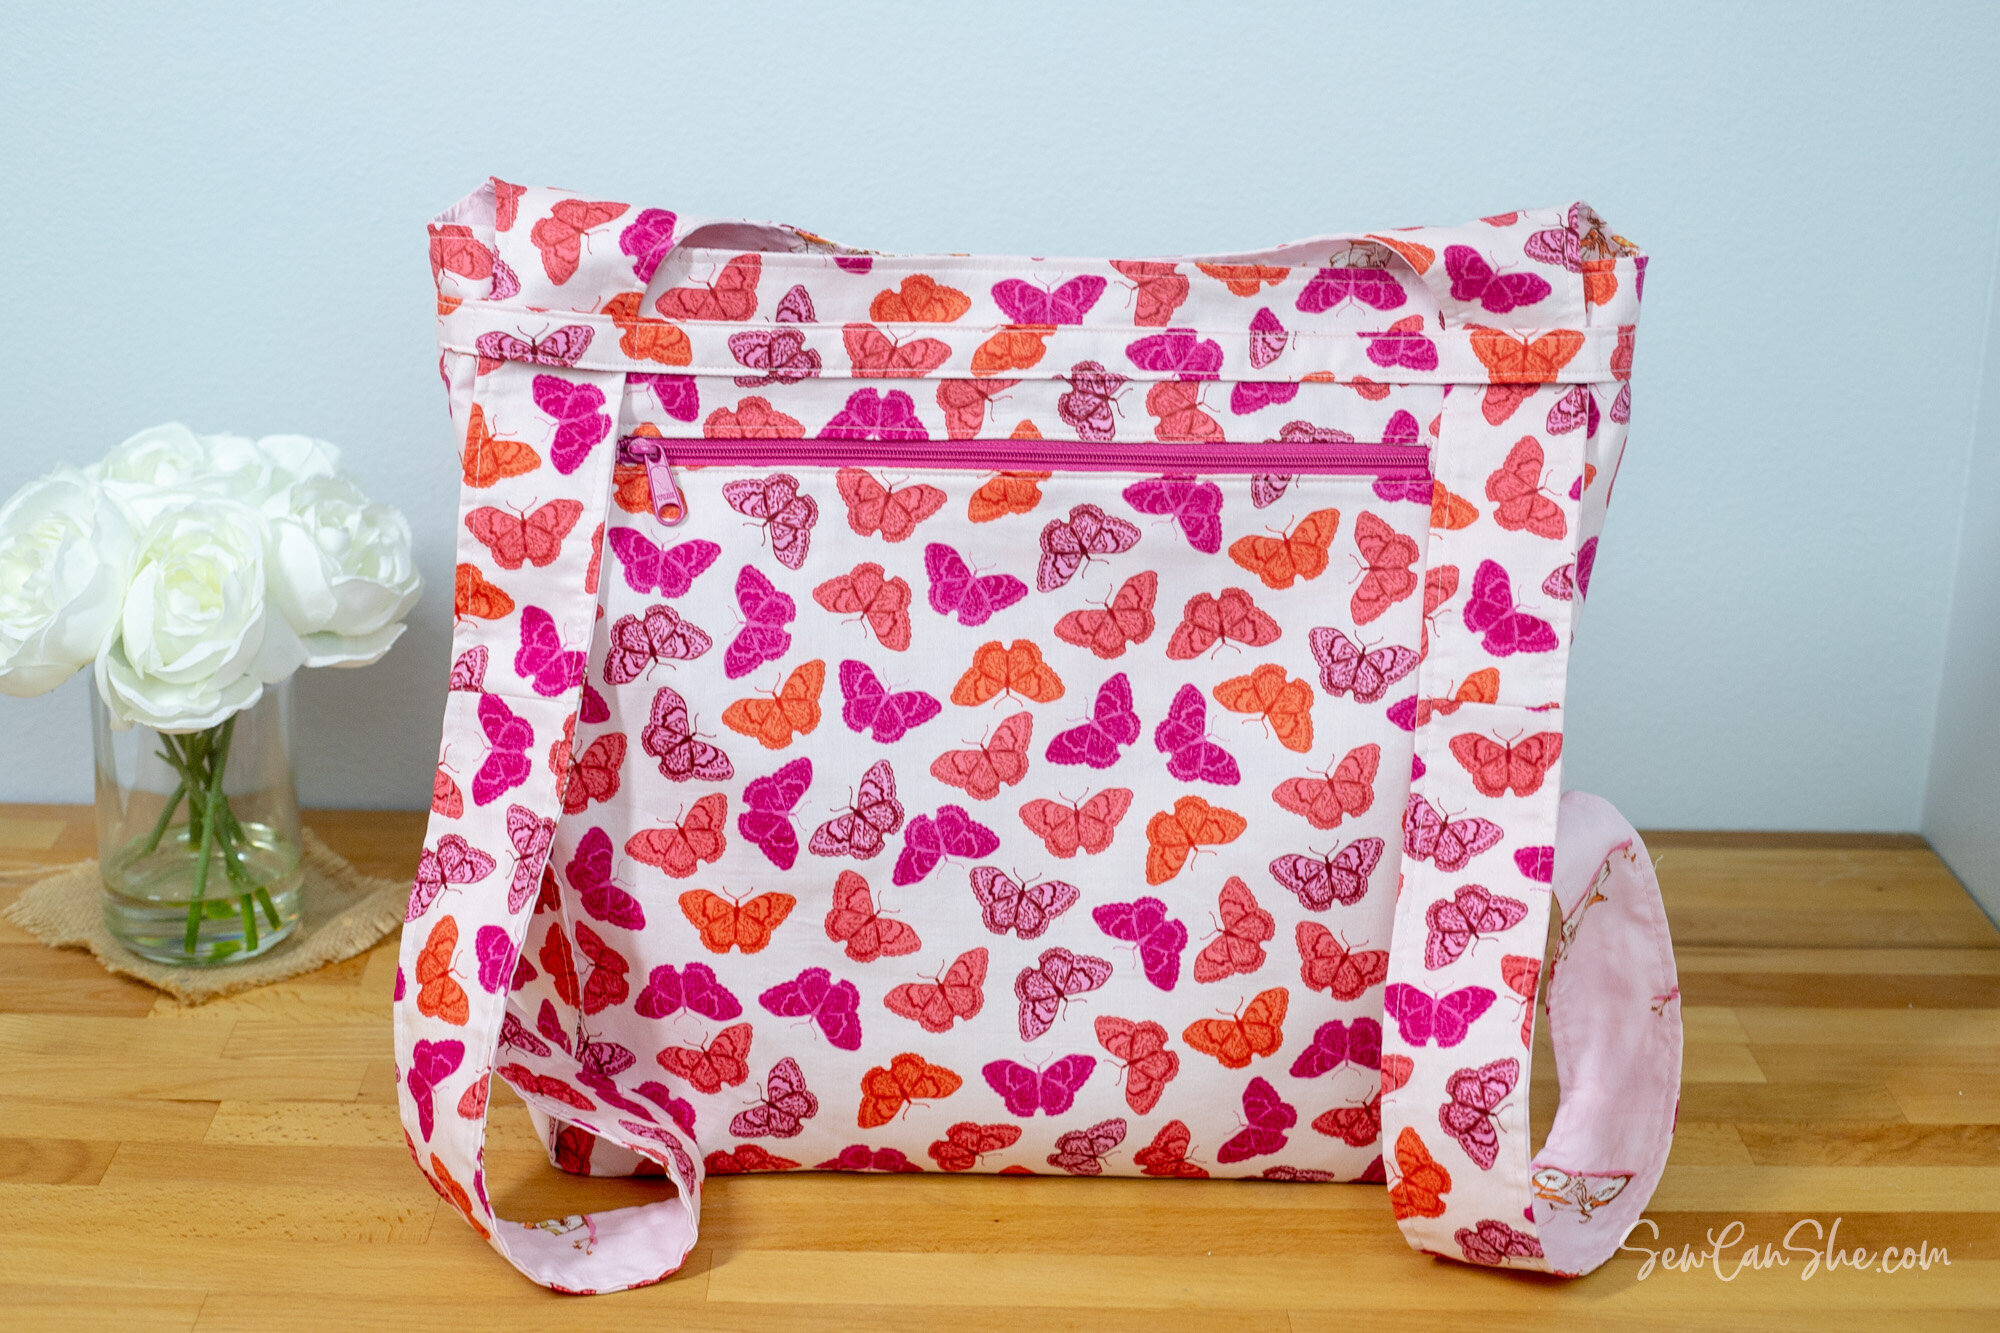 Sew A Convertible Backpack Tote Free Sewing Pattern Sewcanshe Free Sewing Patterns And Tutorials